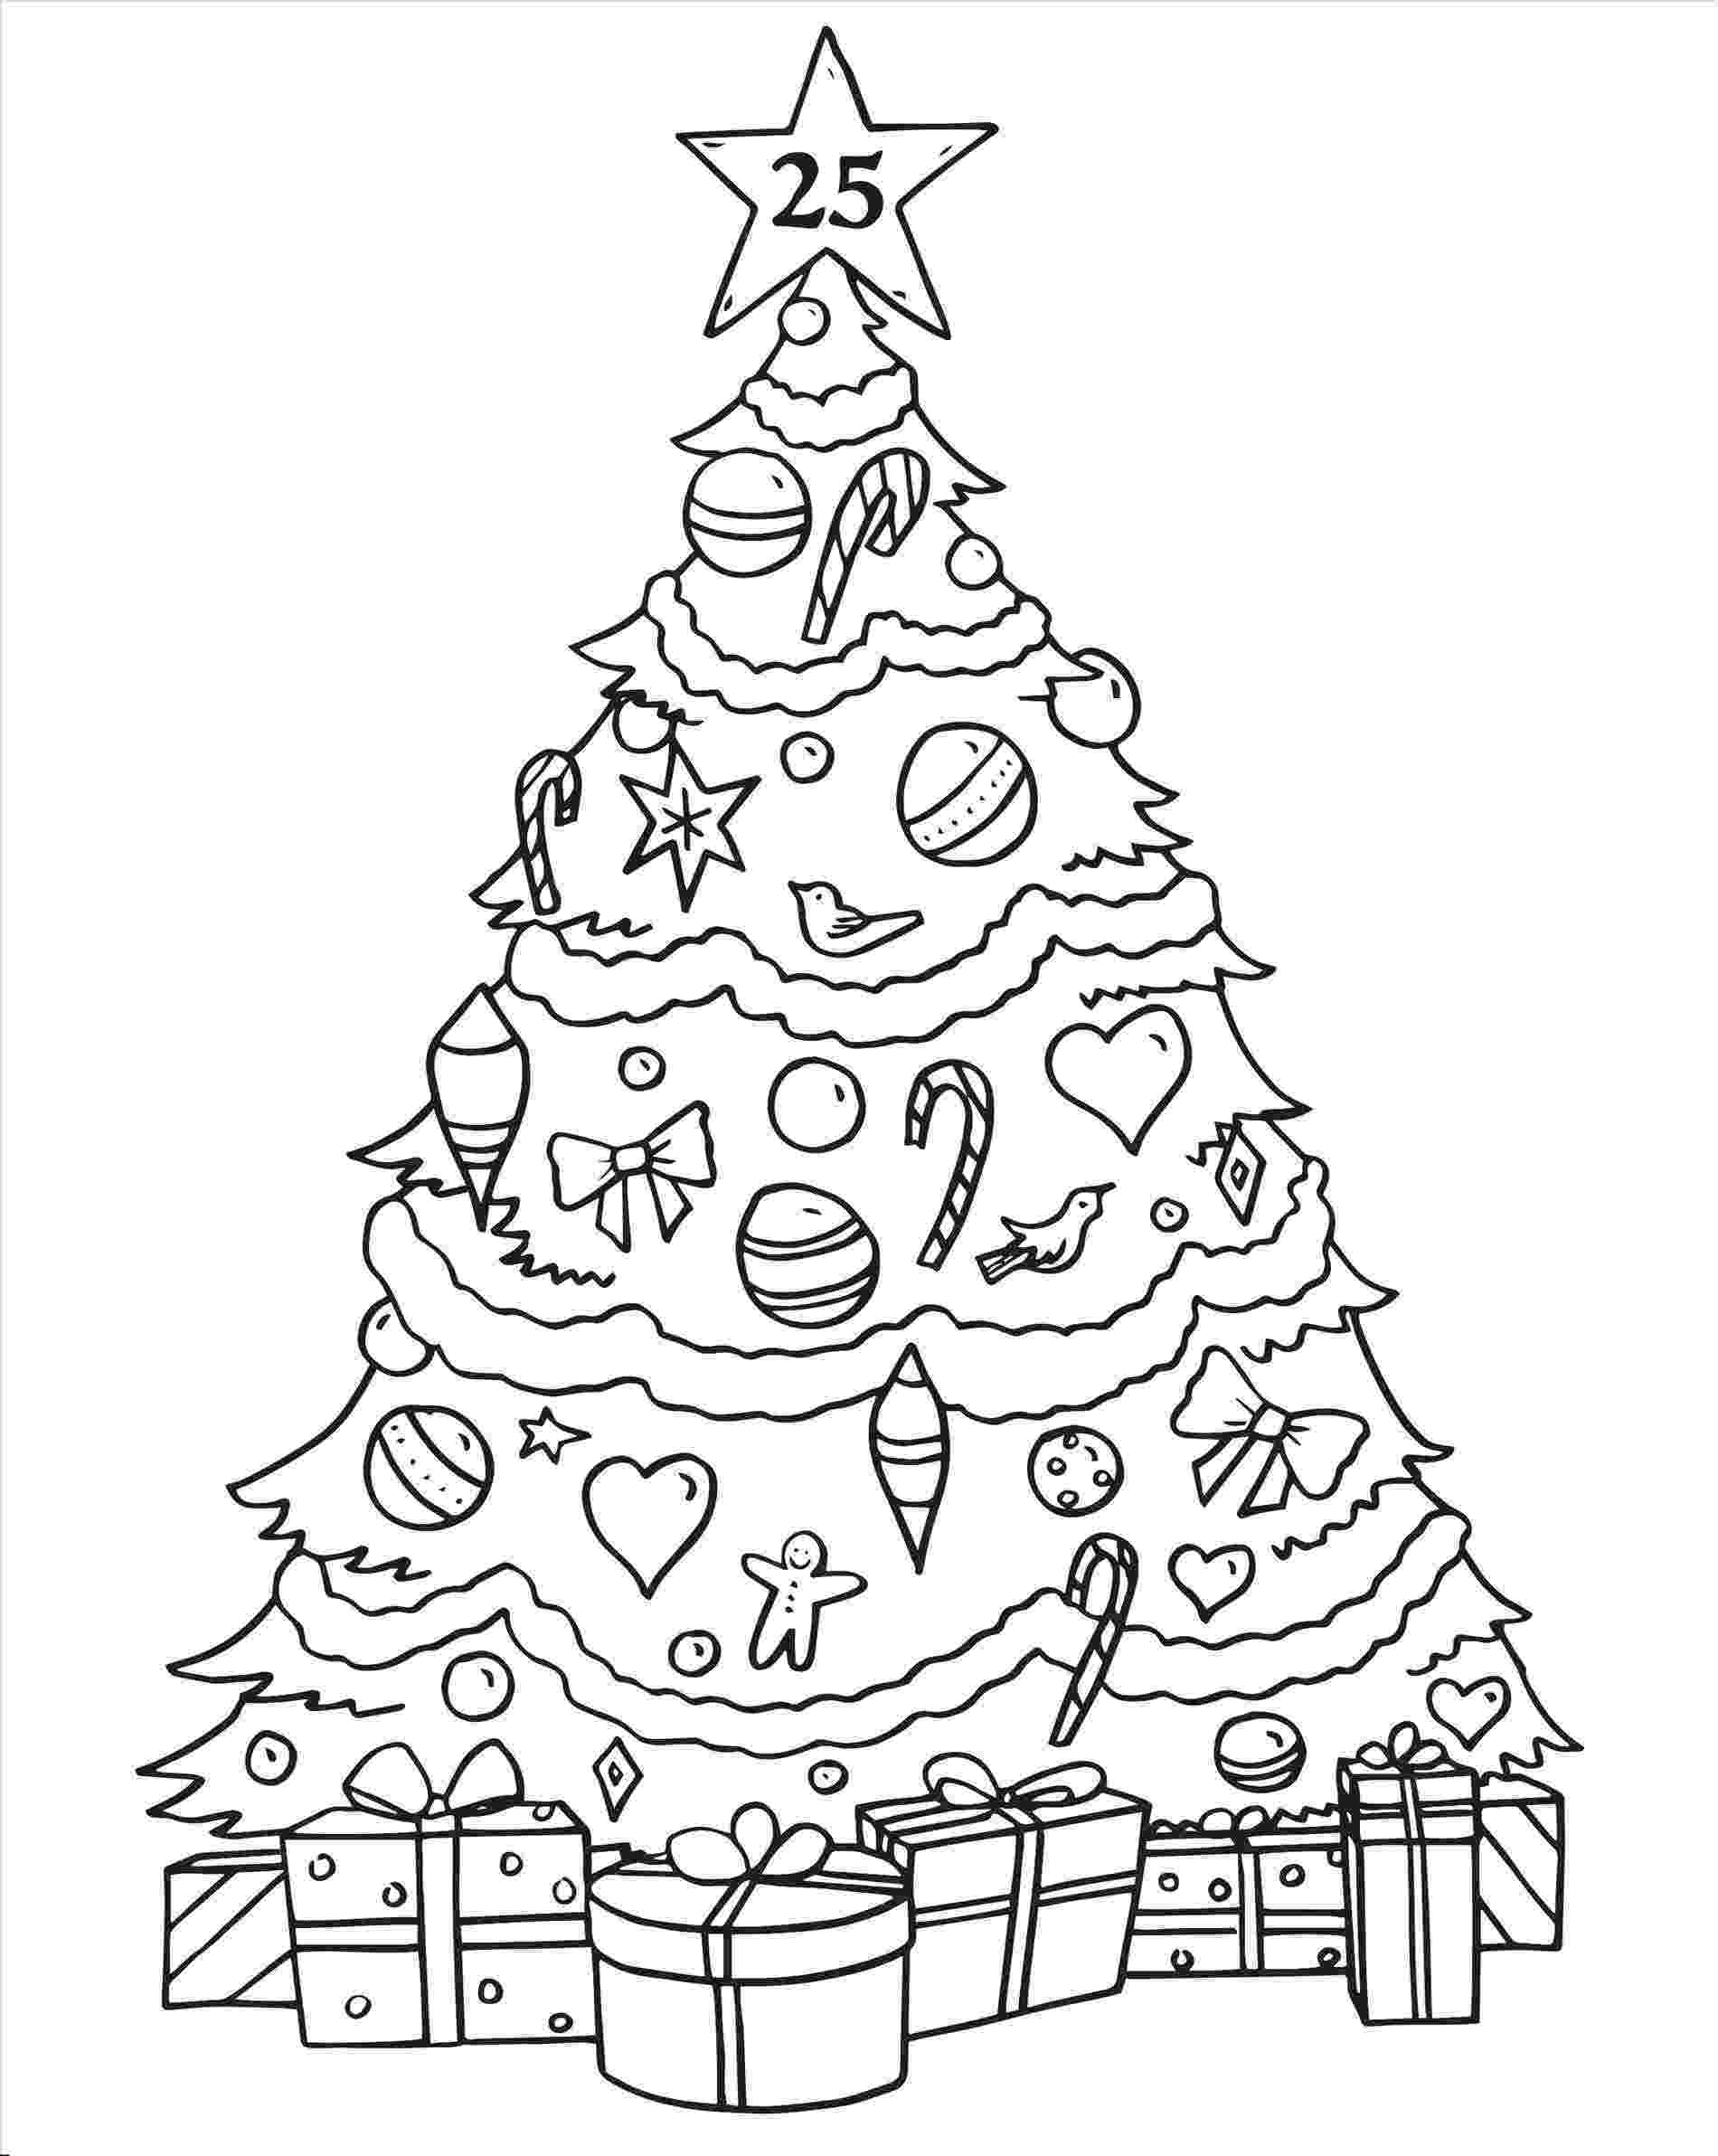 colouring pages christmas tree printable christmas tree coloring pages for kids cool2bkids pages tree christmas colouring